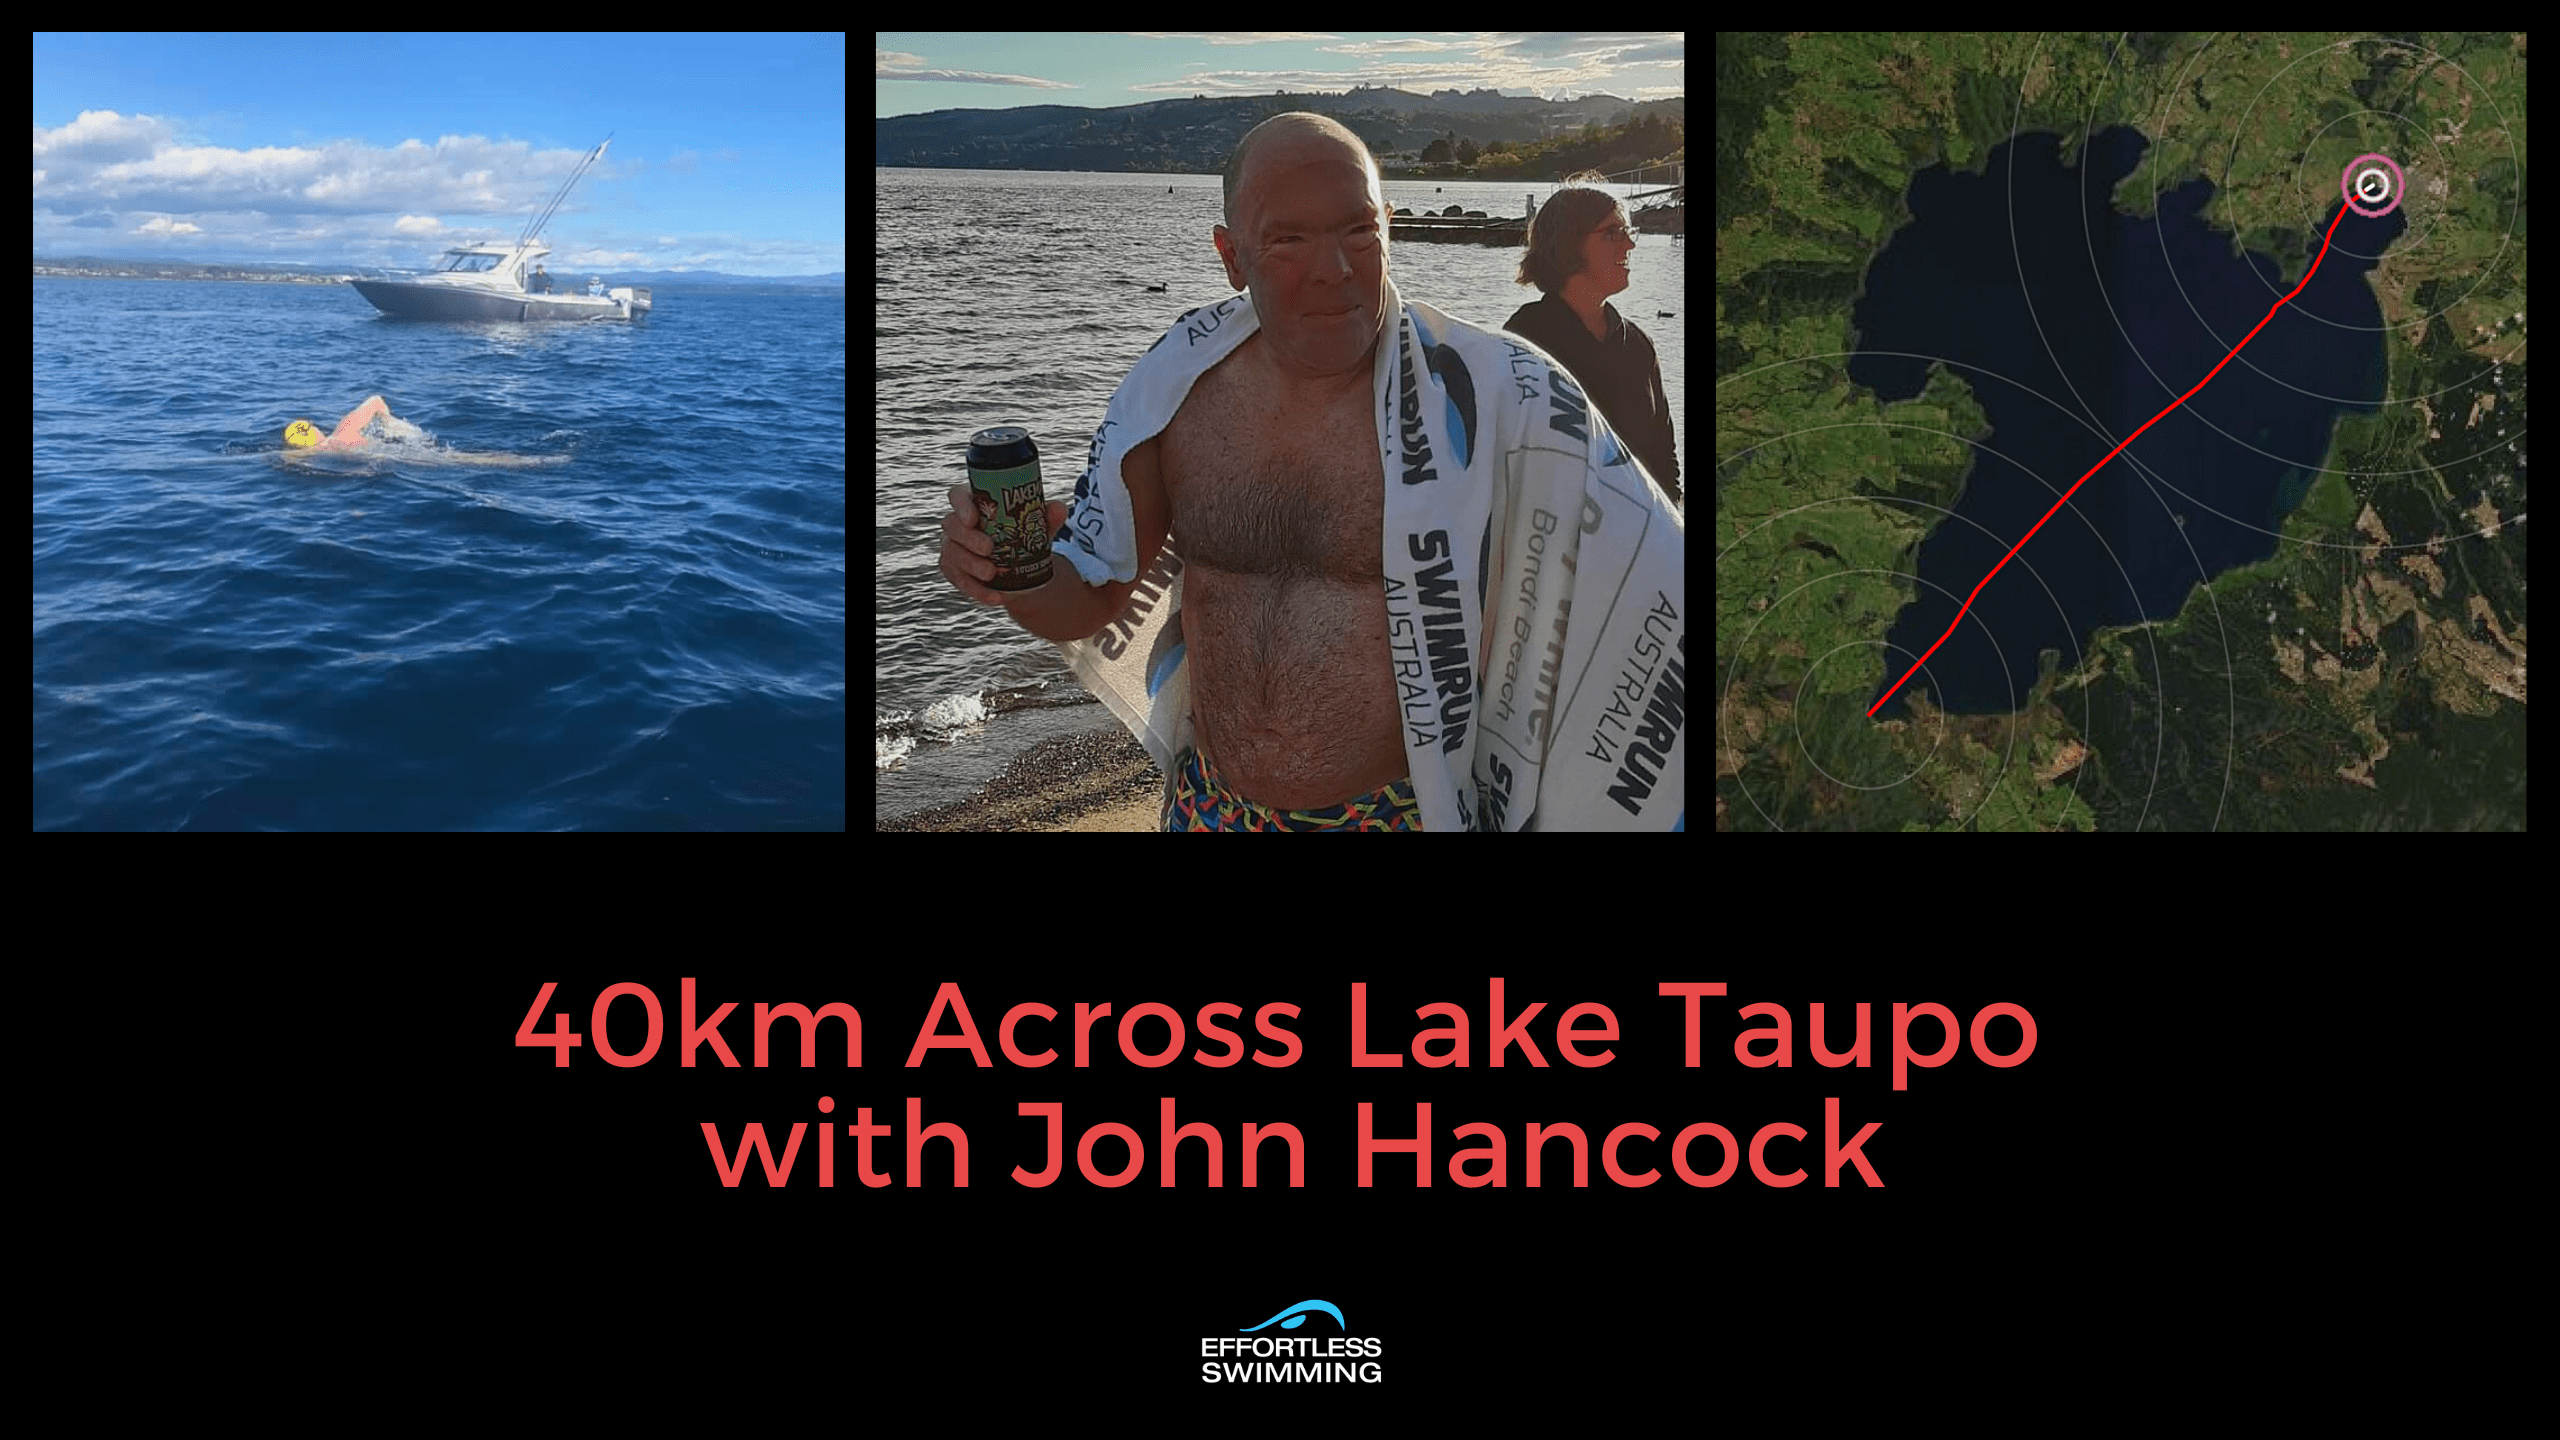 40km Across Lake Taupo with John Hancock